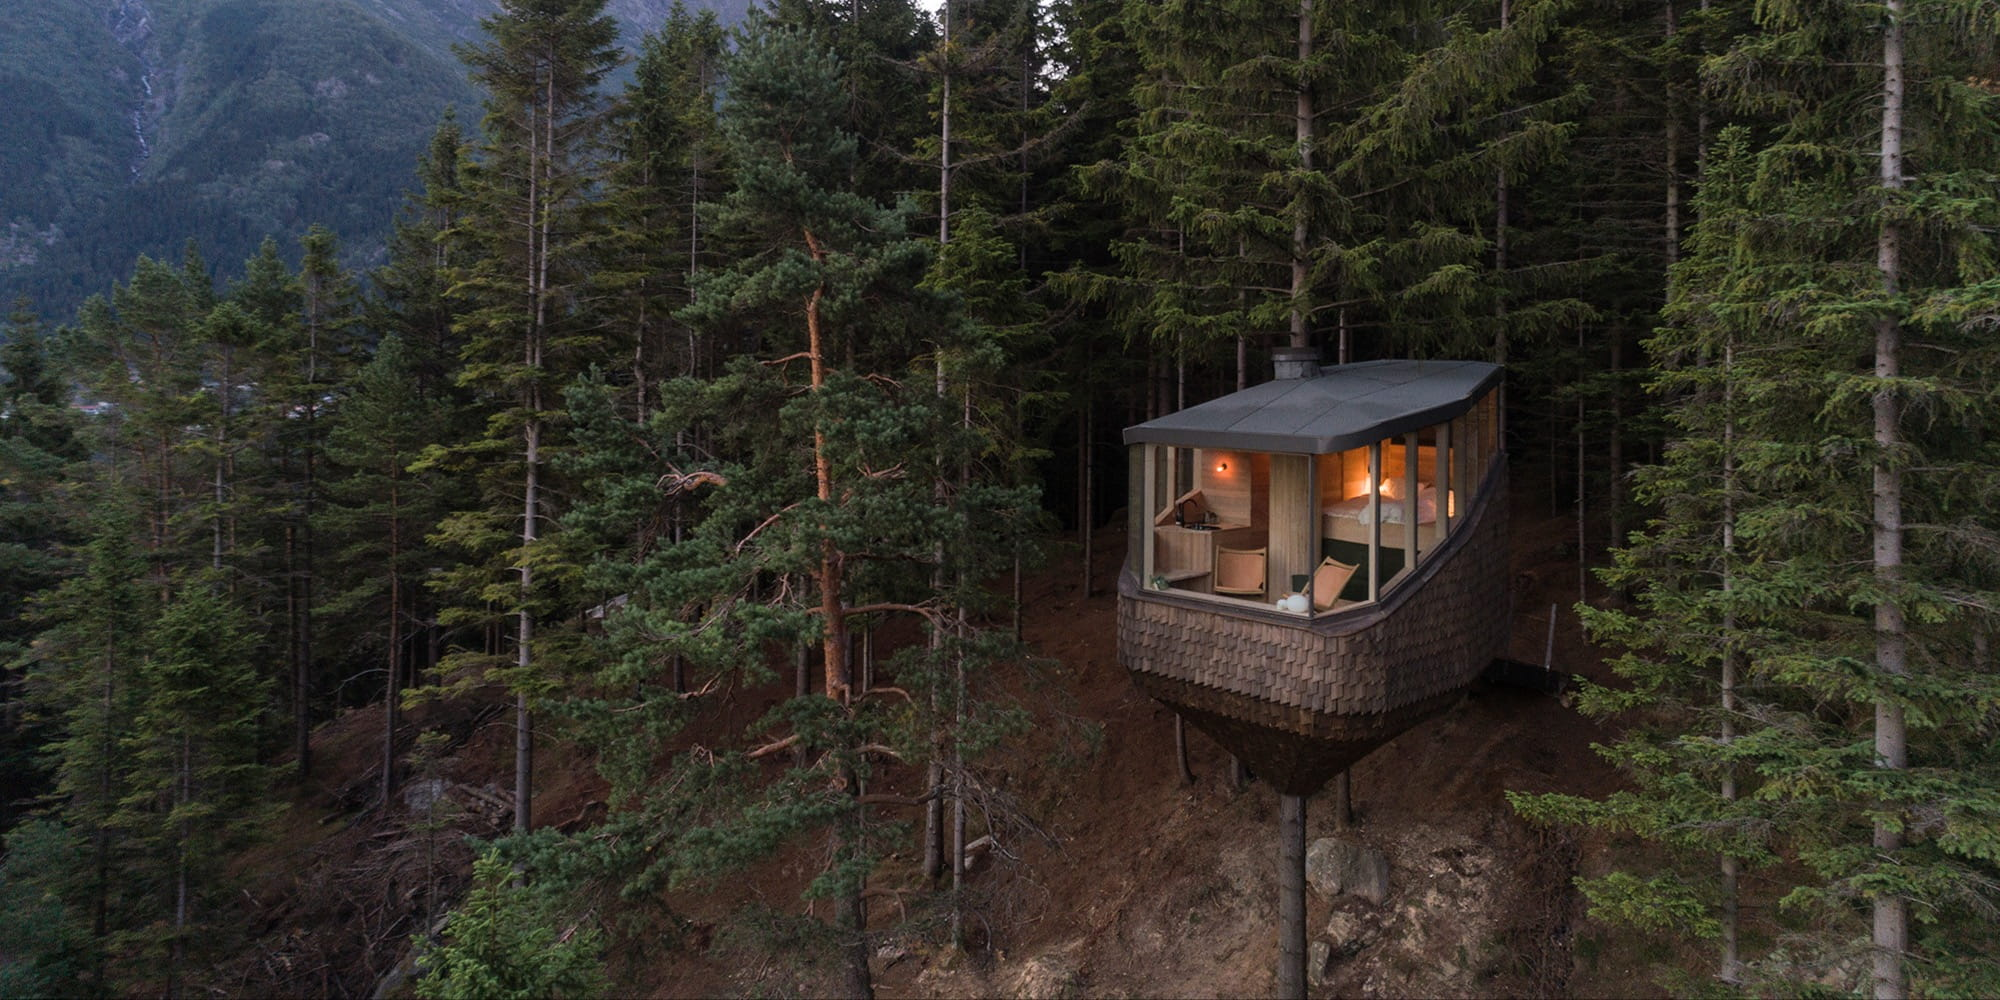 Helen & Hard completes wooden cabins in Norway suspended above the forest